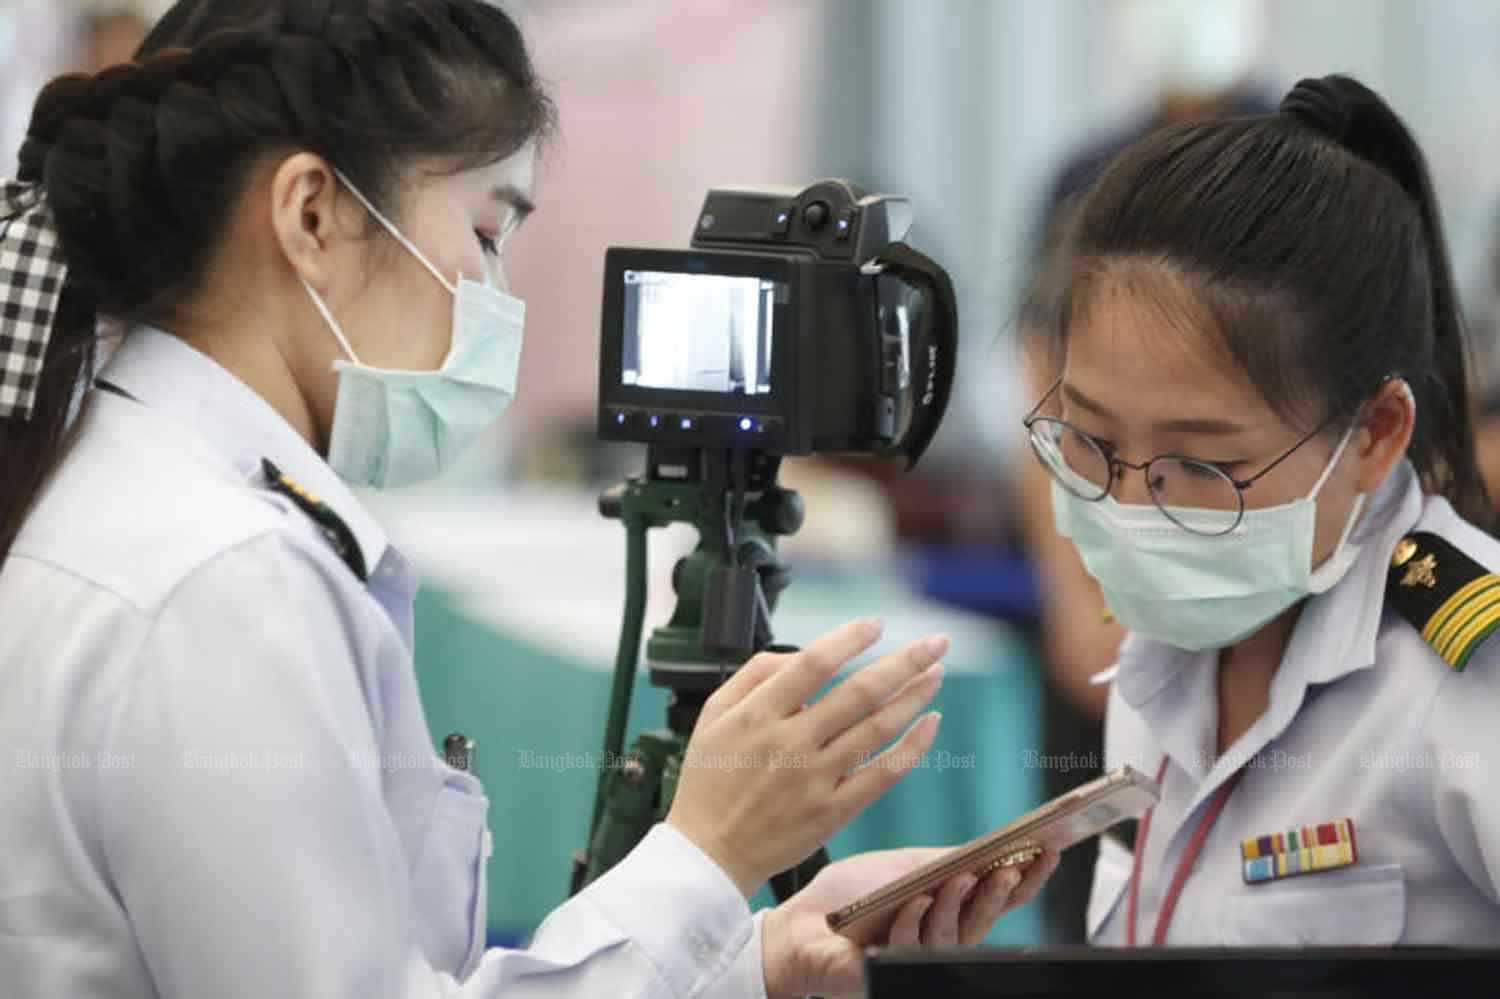 Health officials prepare to screen visitors at Suvarnabhumi airport in Samut Prakan province. They are advised to better protect themselves as the novel coronavirus can be transmitted between humans. (Photo by Pornprom Satrabhaya)